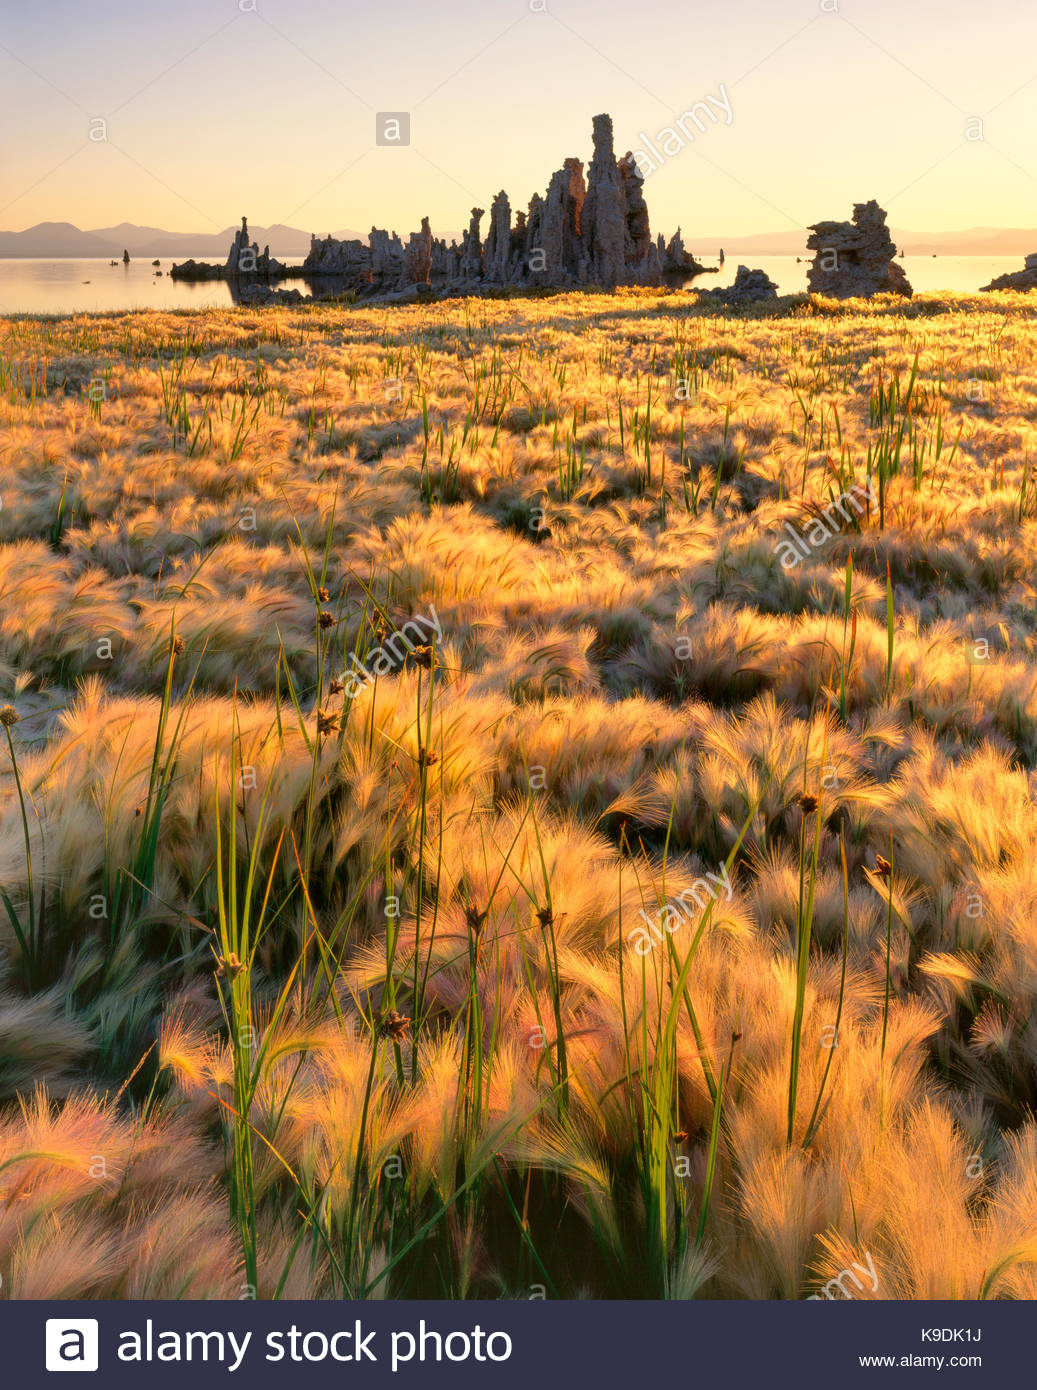 Wild Barley and Tufa Formations, Mono Lake, Mono Basin National Forest Scenic Area, California - Stock Image